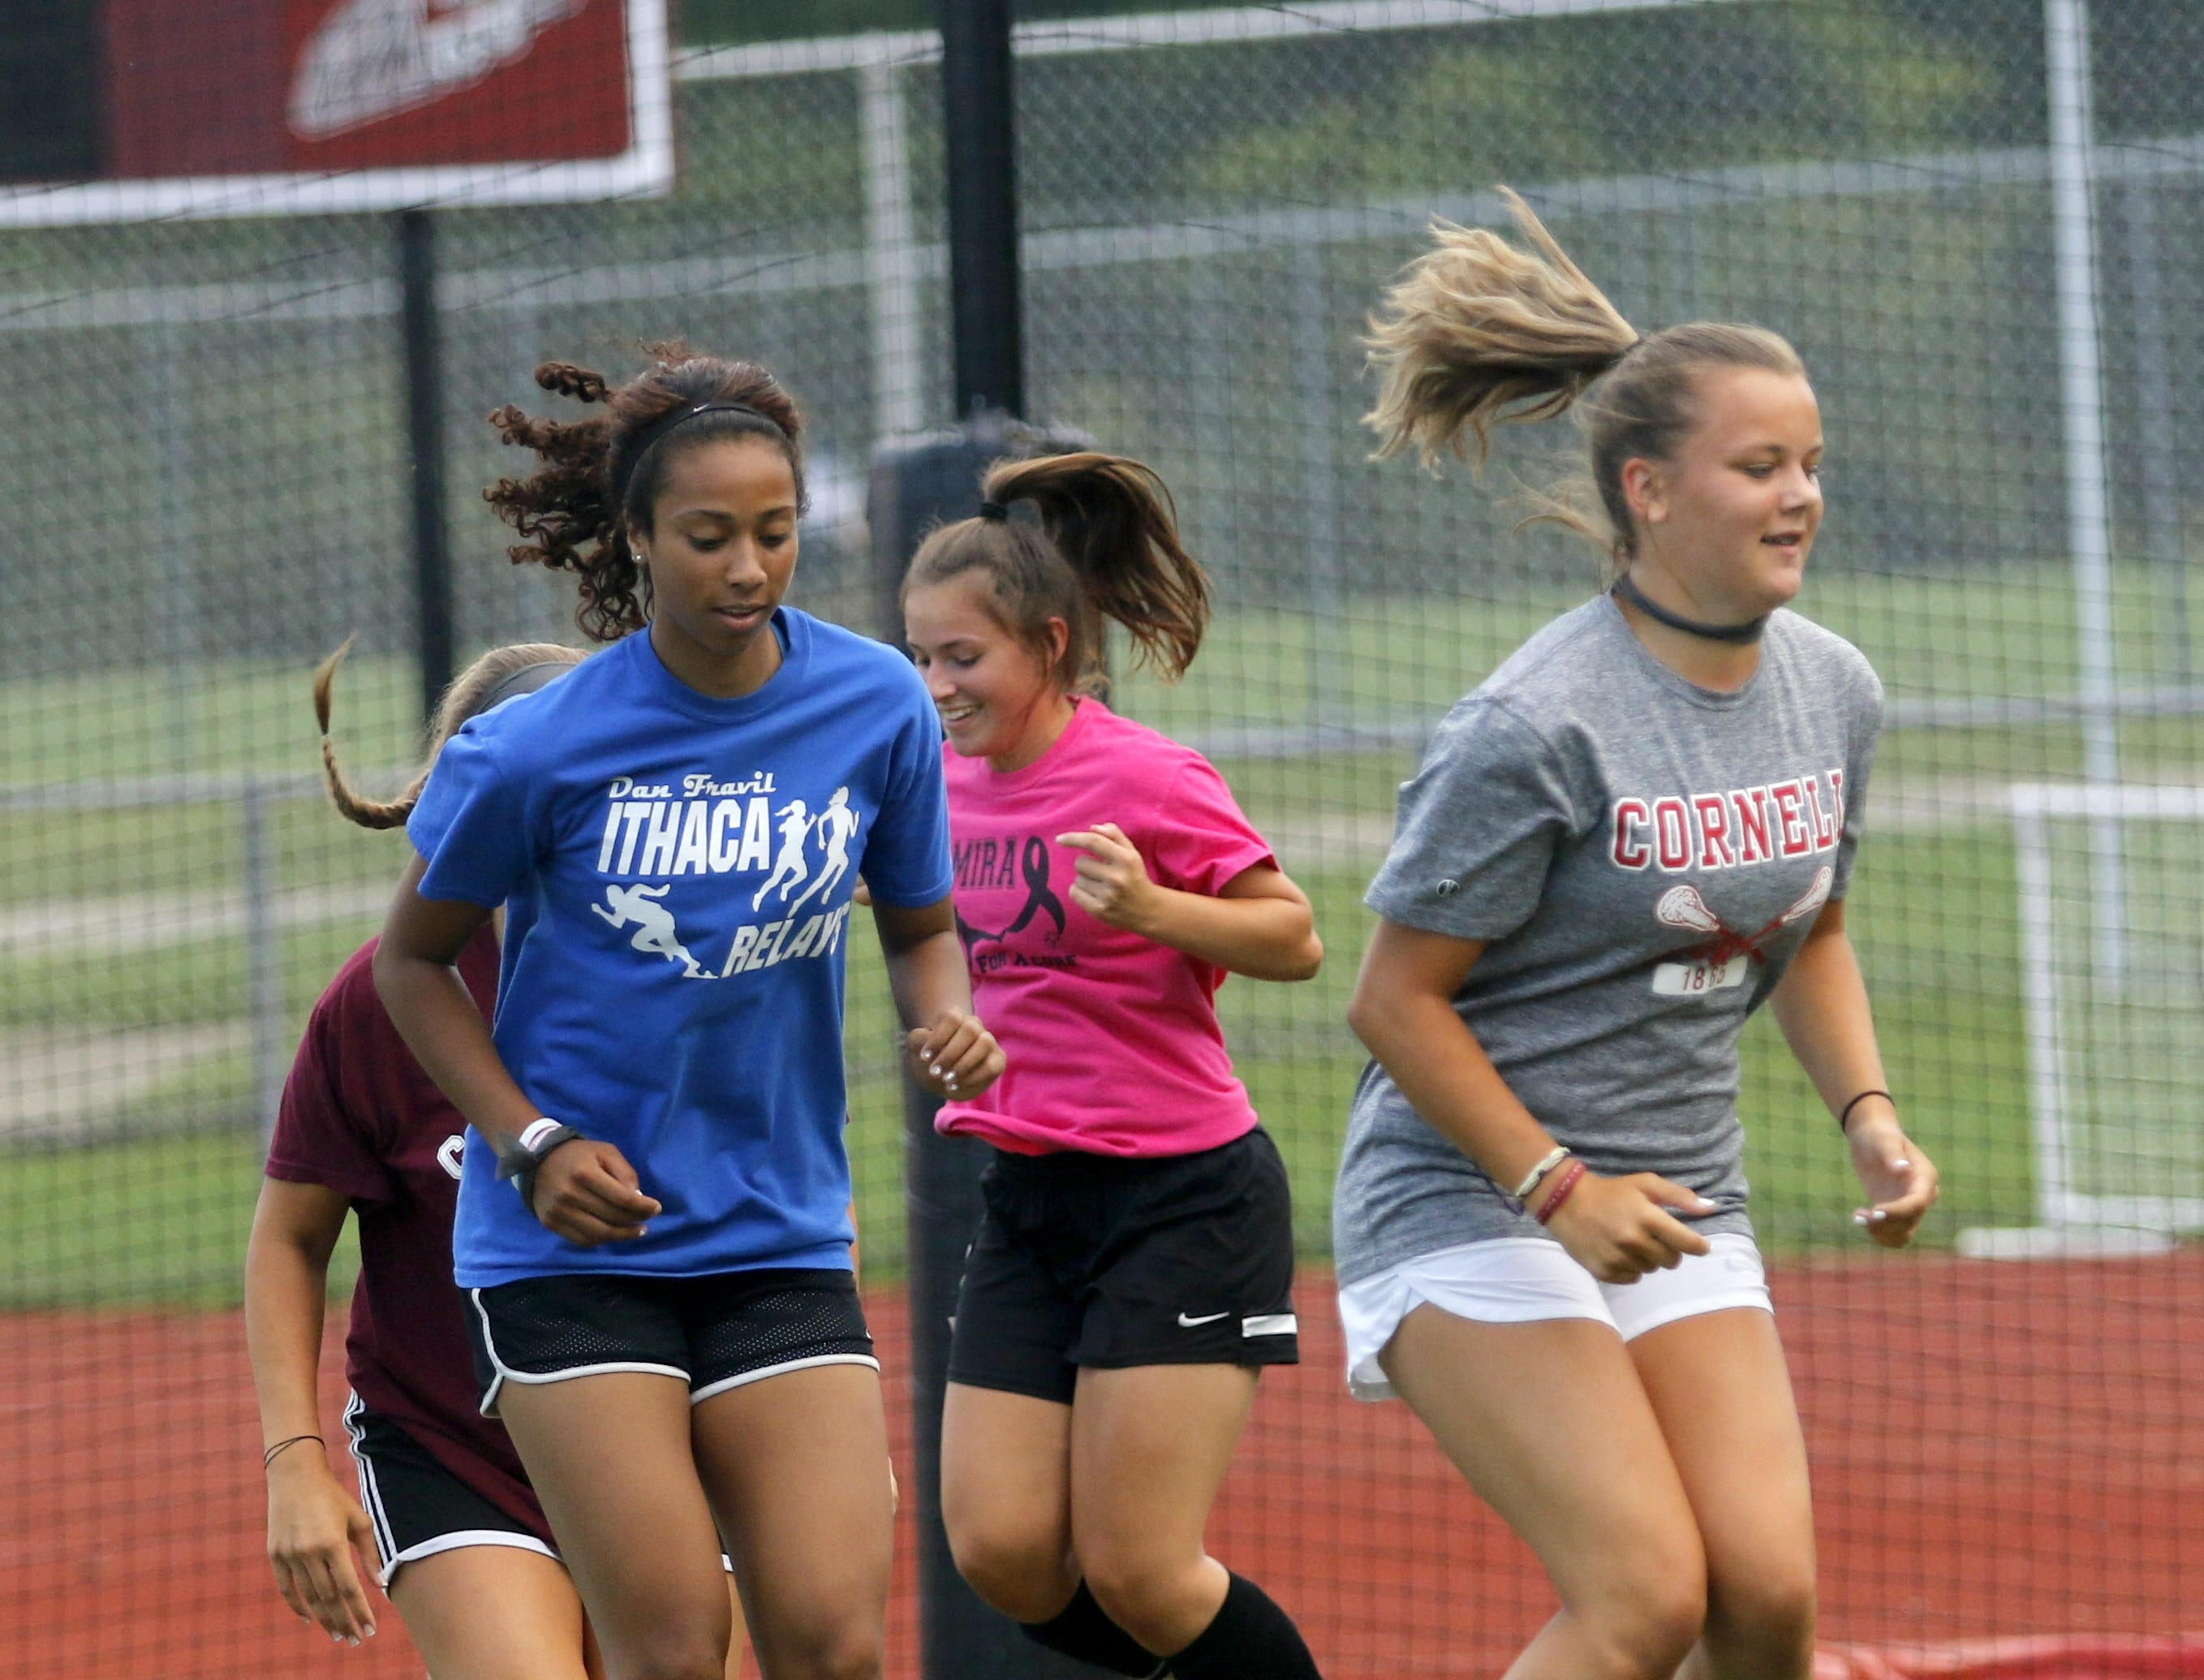 The Elmira High School girls soccer team practices Aug. 16 at Ernie Davis Academy's Marty Harrigan Athletic Field.